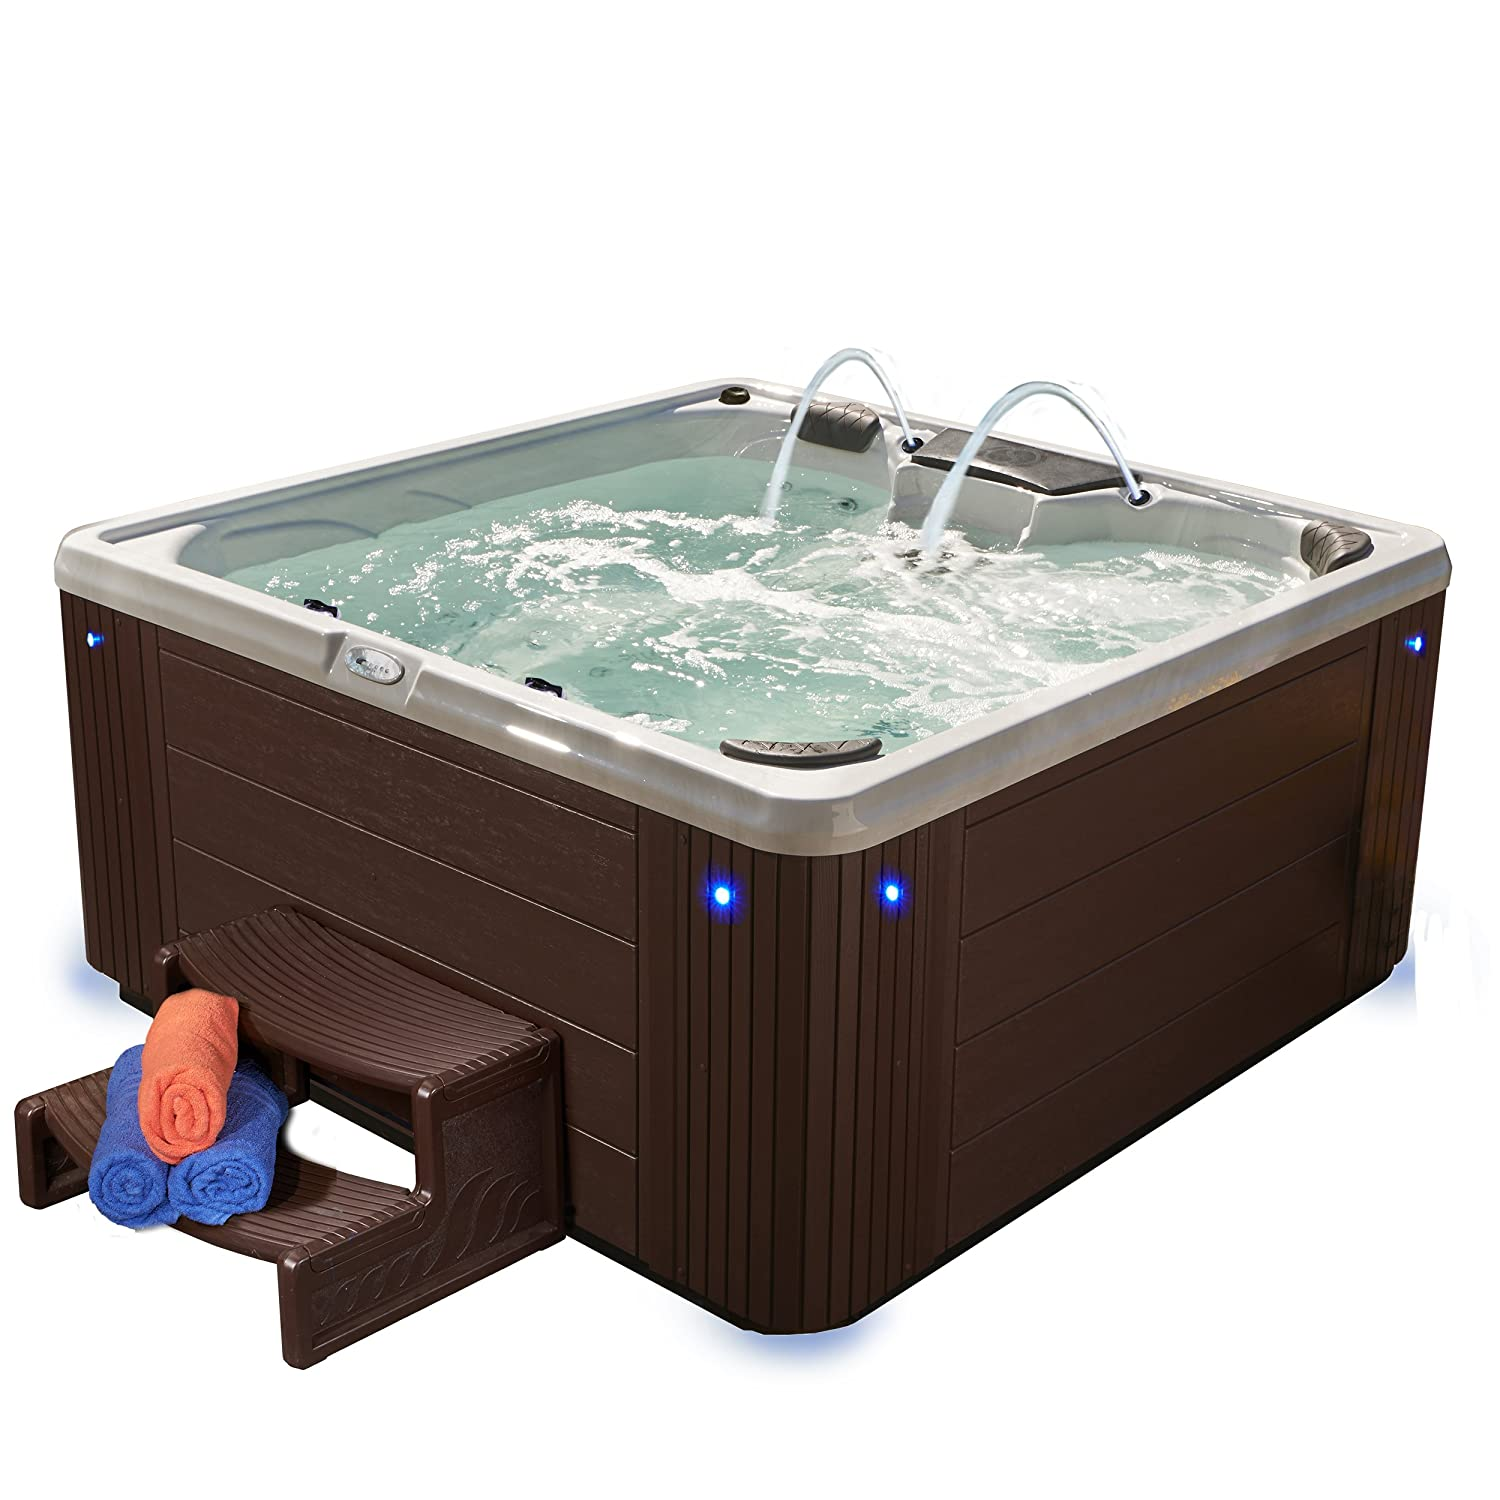 🛀 Best Cleaners For Hot Tubs, Spas, Jacuzzis & Whirlpool Baths >>